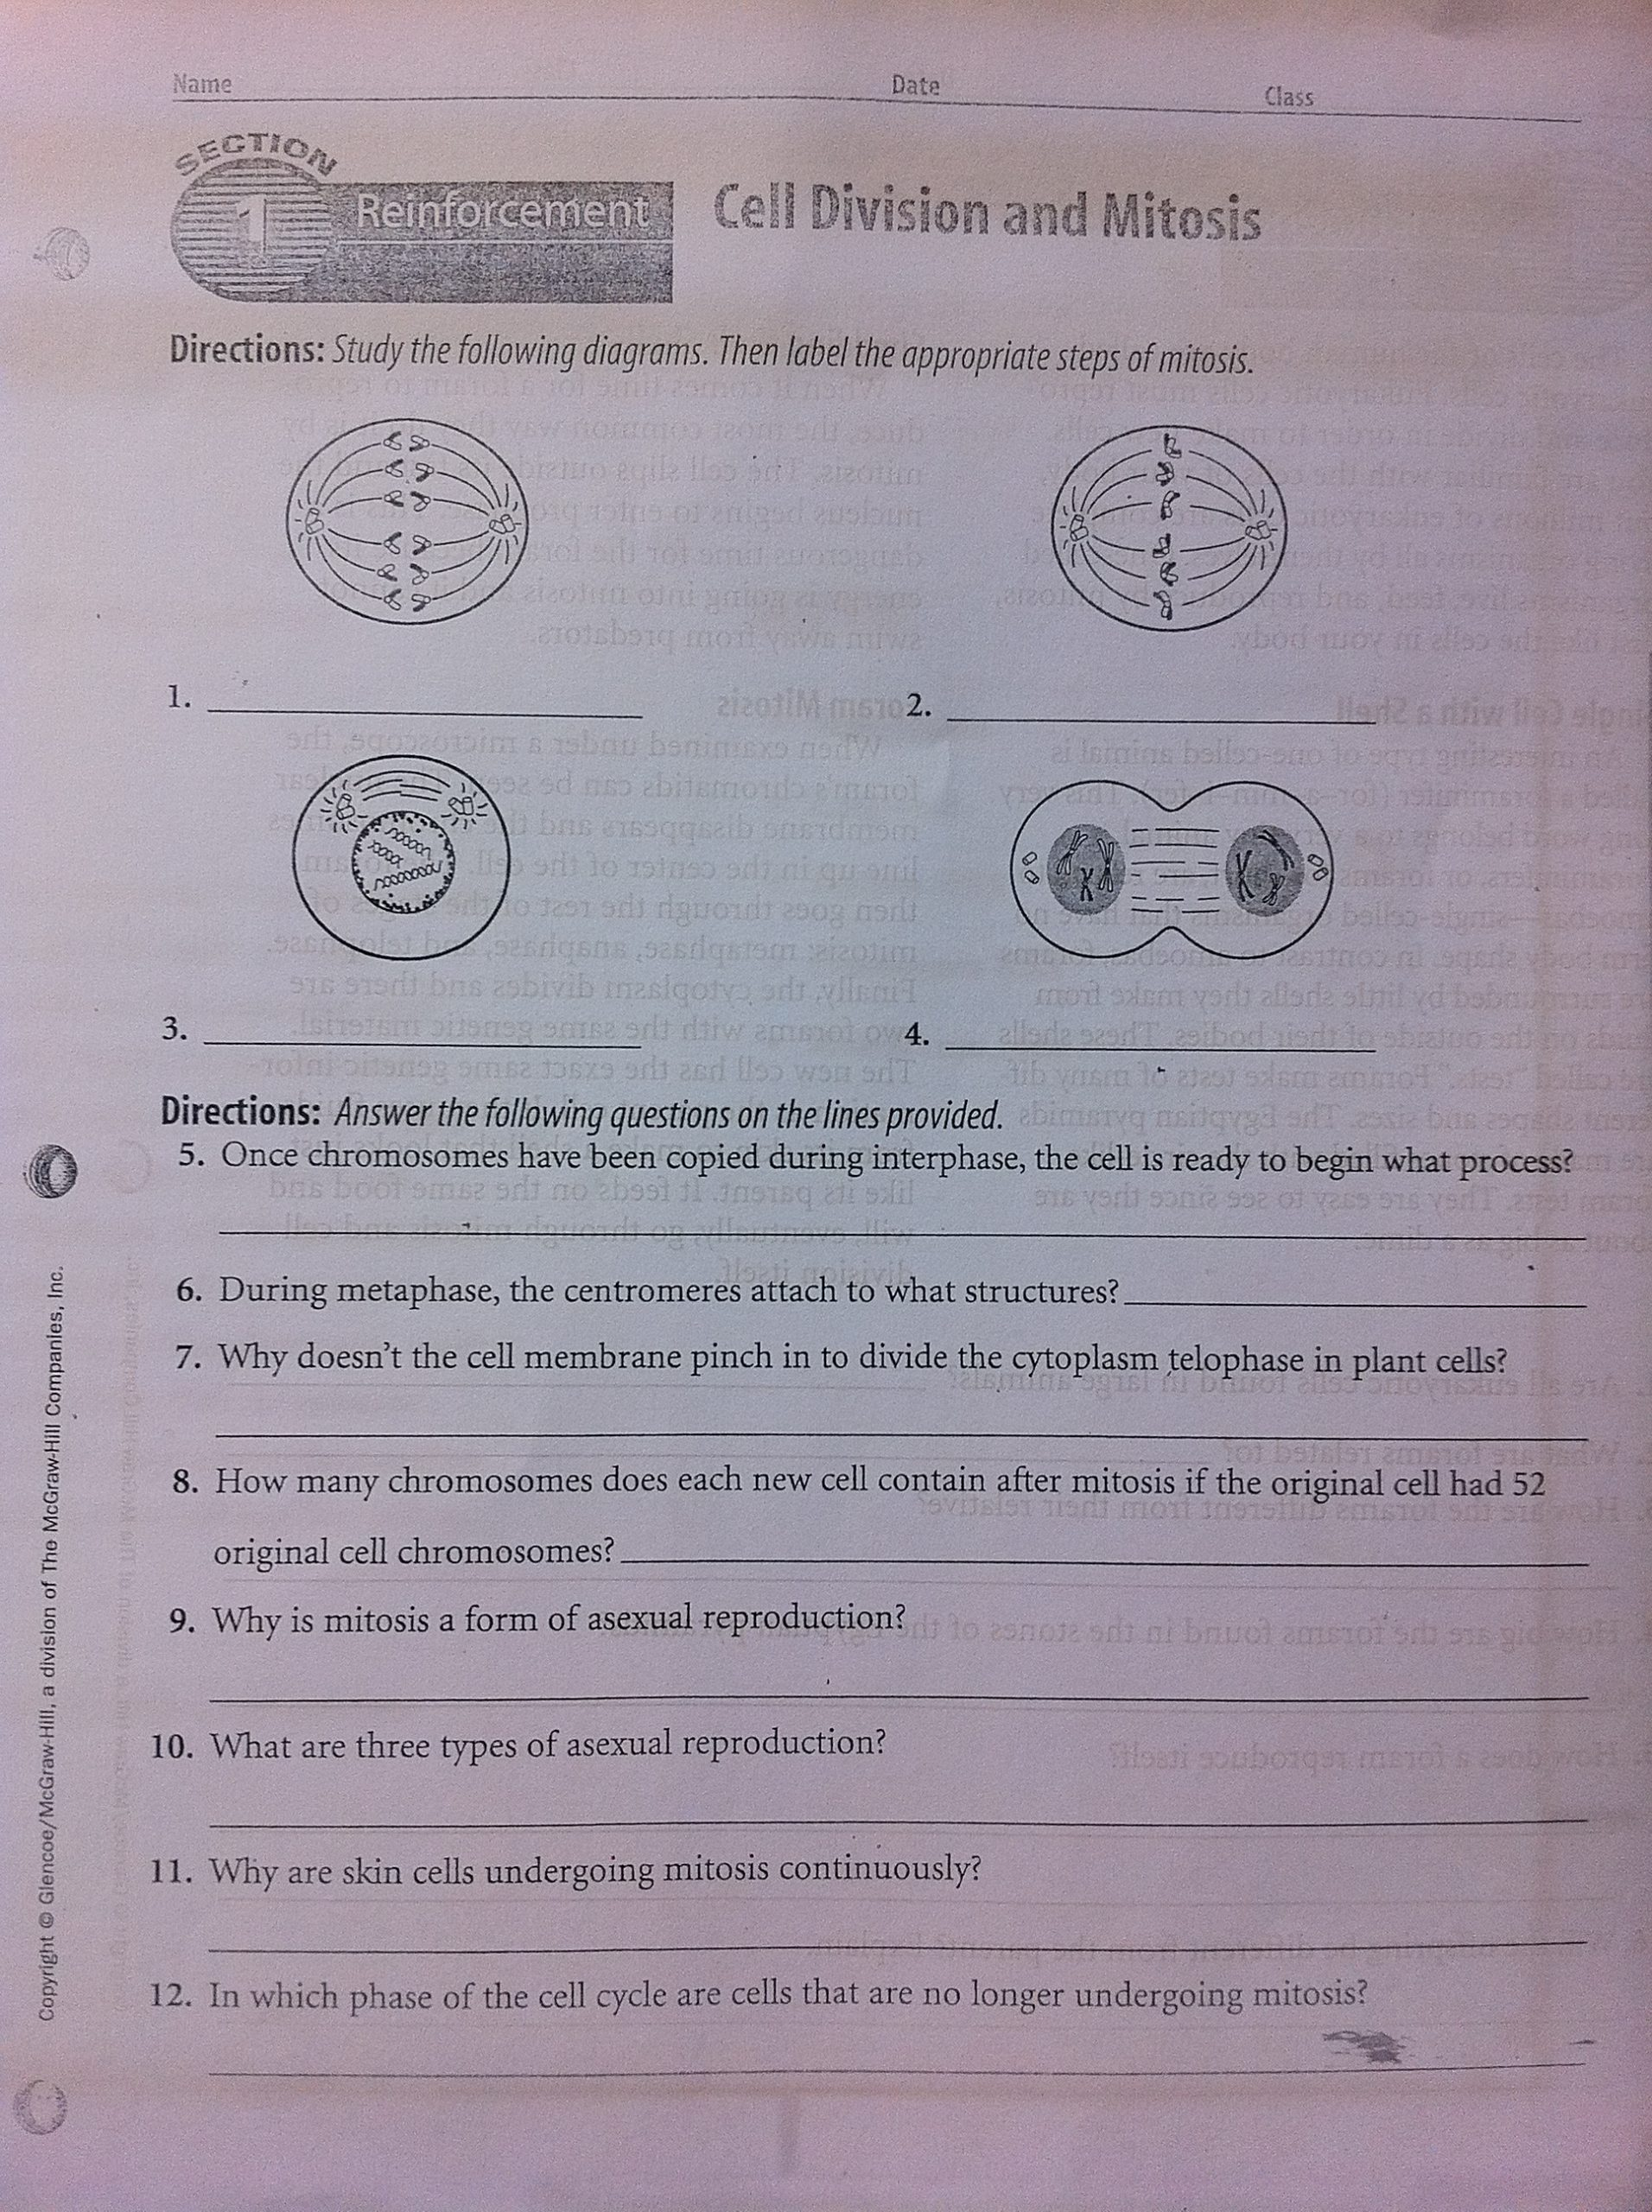 Cell Cycle Worksheet Answers Cells & Mitosis Reinforcement